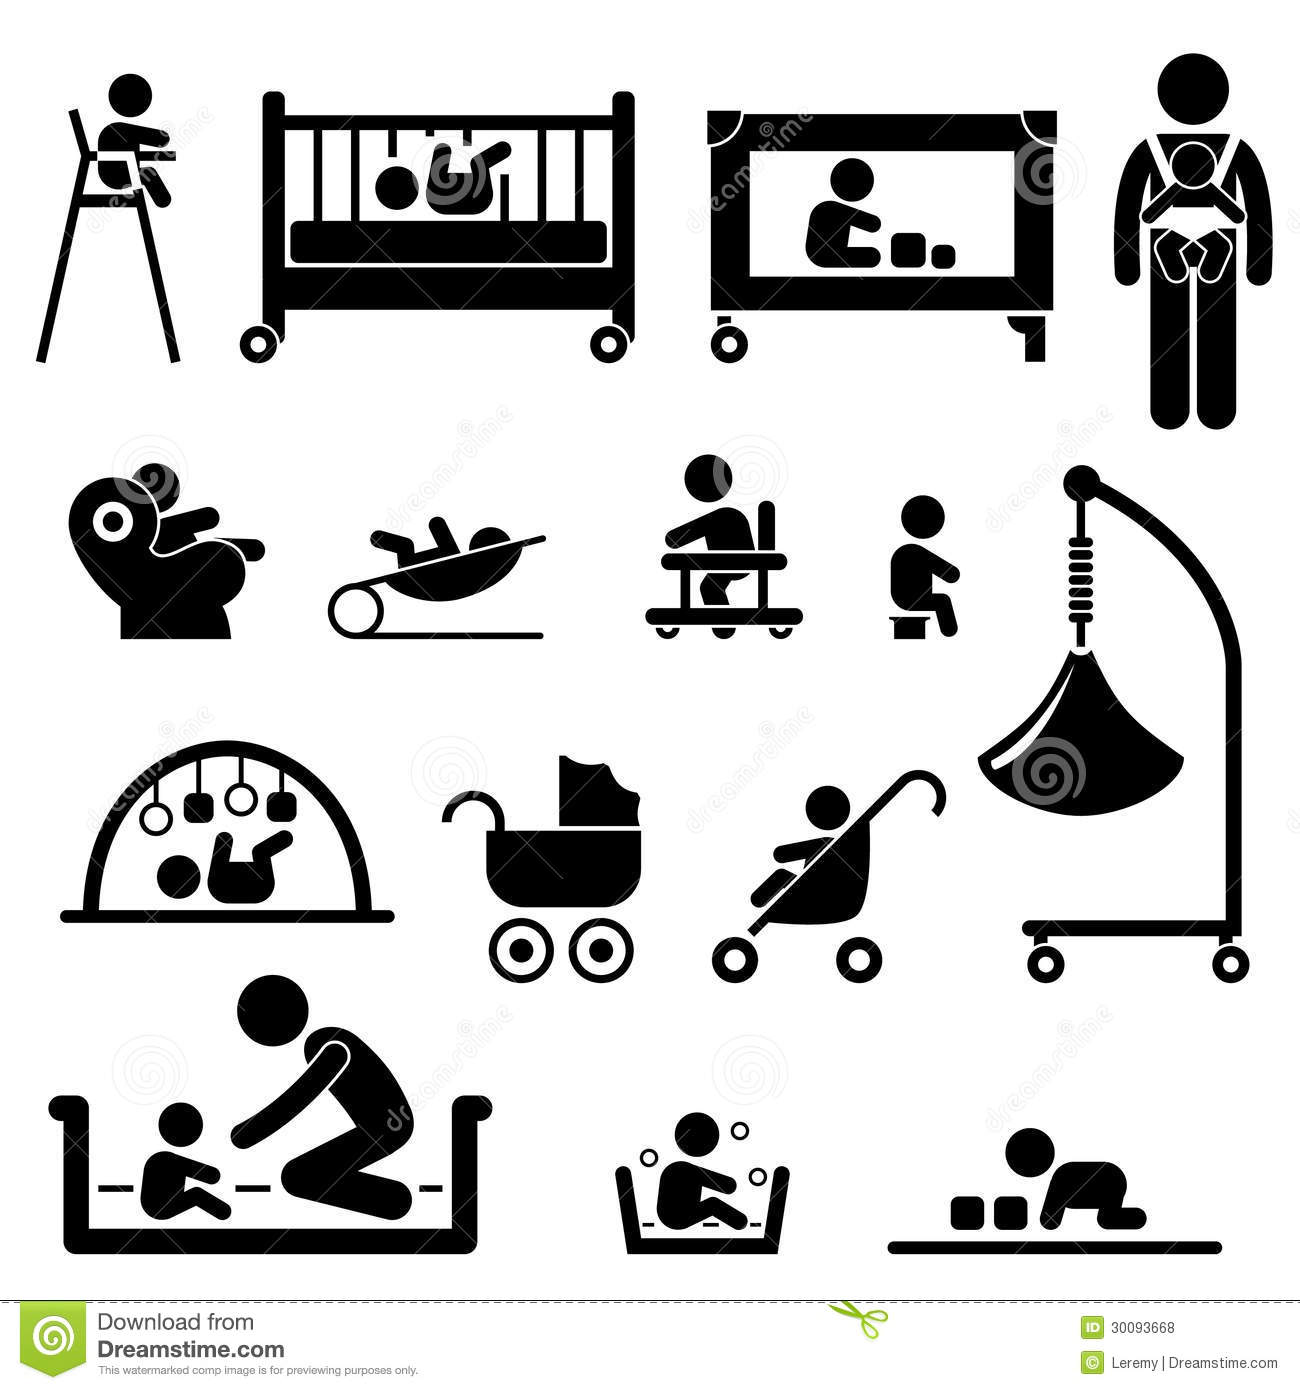 Royalty Free Stock Photos Set People Stick Figure Pictograms Representing Baby Caring Equipment Tools Image30093668 on playground equipment